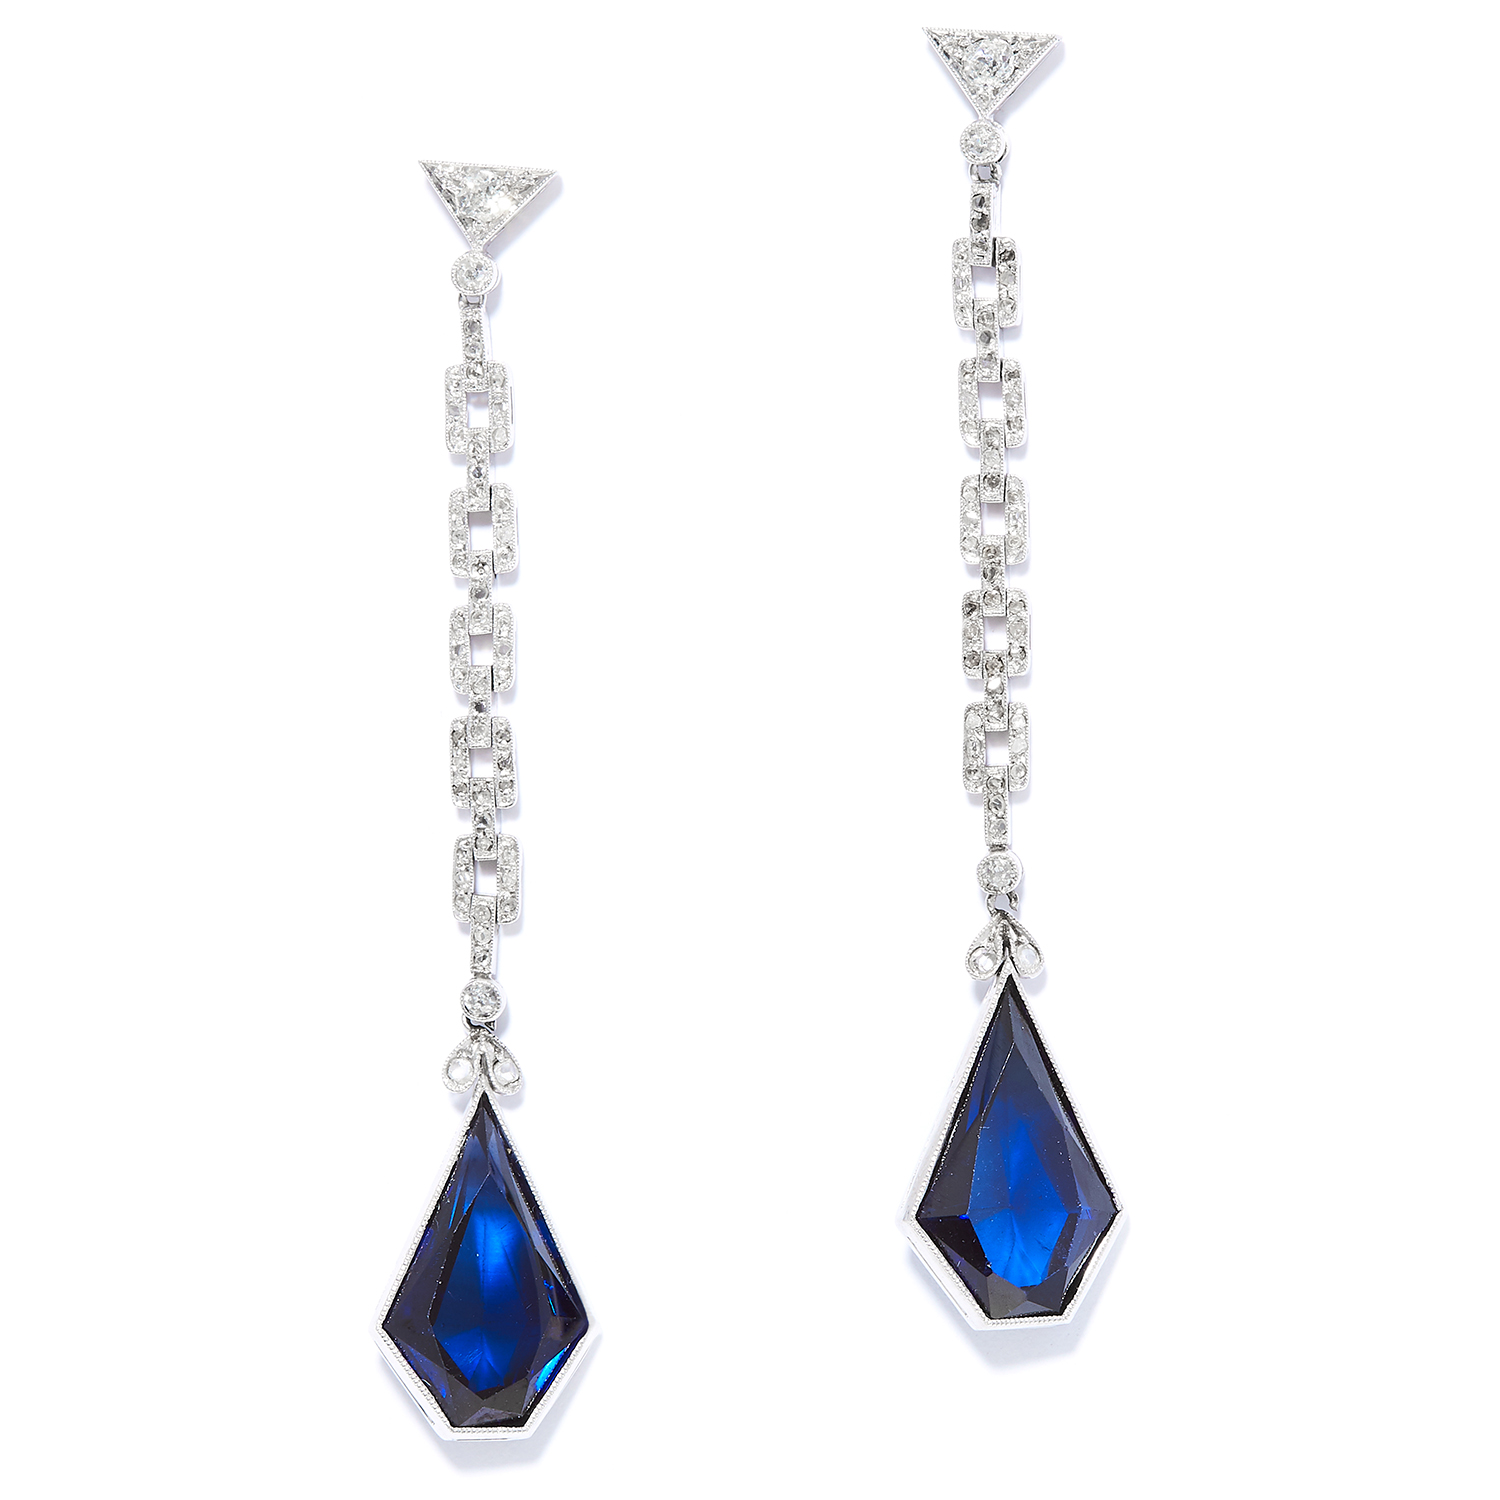 Los 24 - SAPPHIRE AND DIAMOND EARRINGS in 18ct white gold, each set with round cut diamonds suspending a